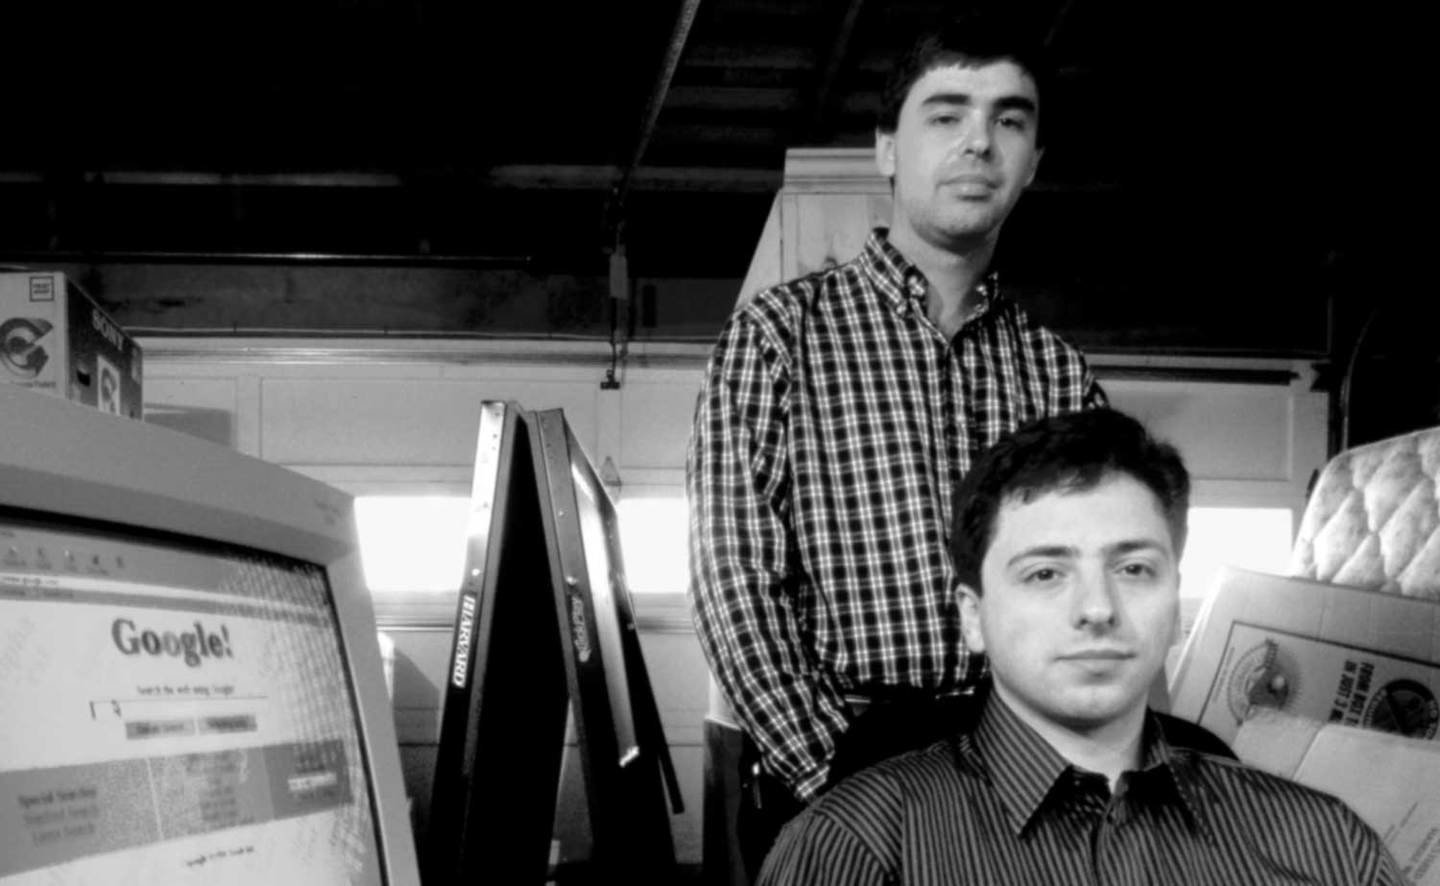 Founders: Larry Page and Sergey Brin